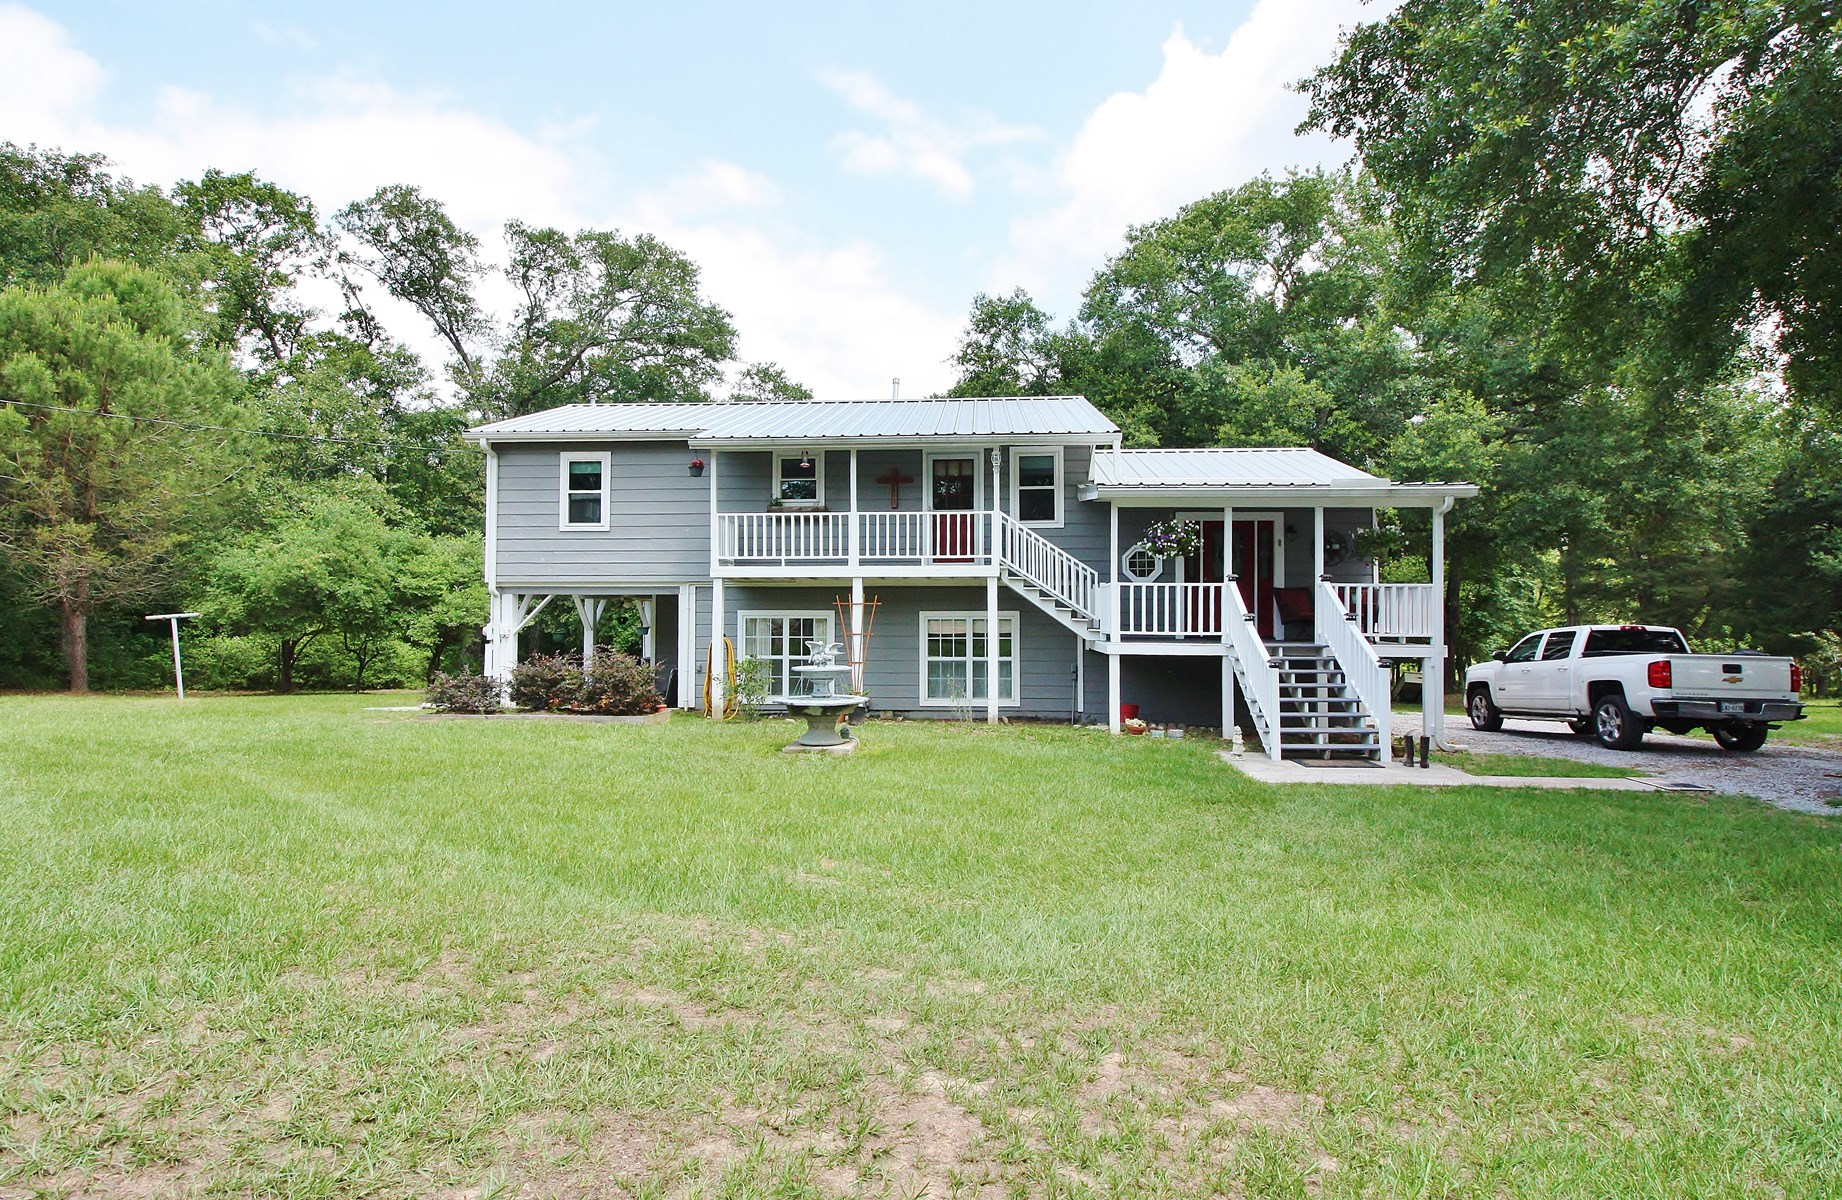 Country Home on Acreage For Sale in Leon County, Texas